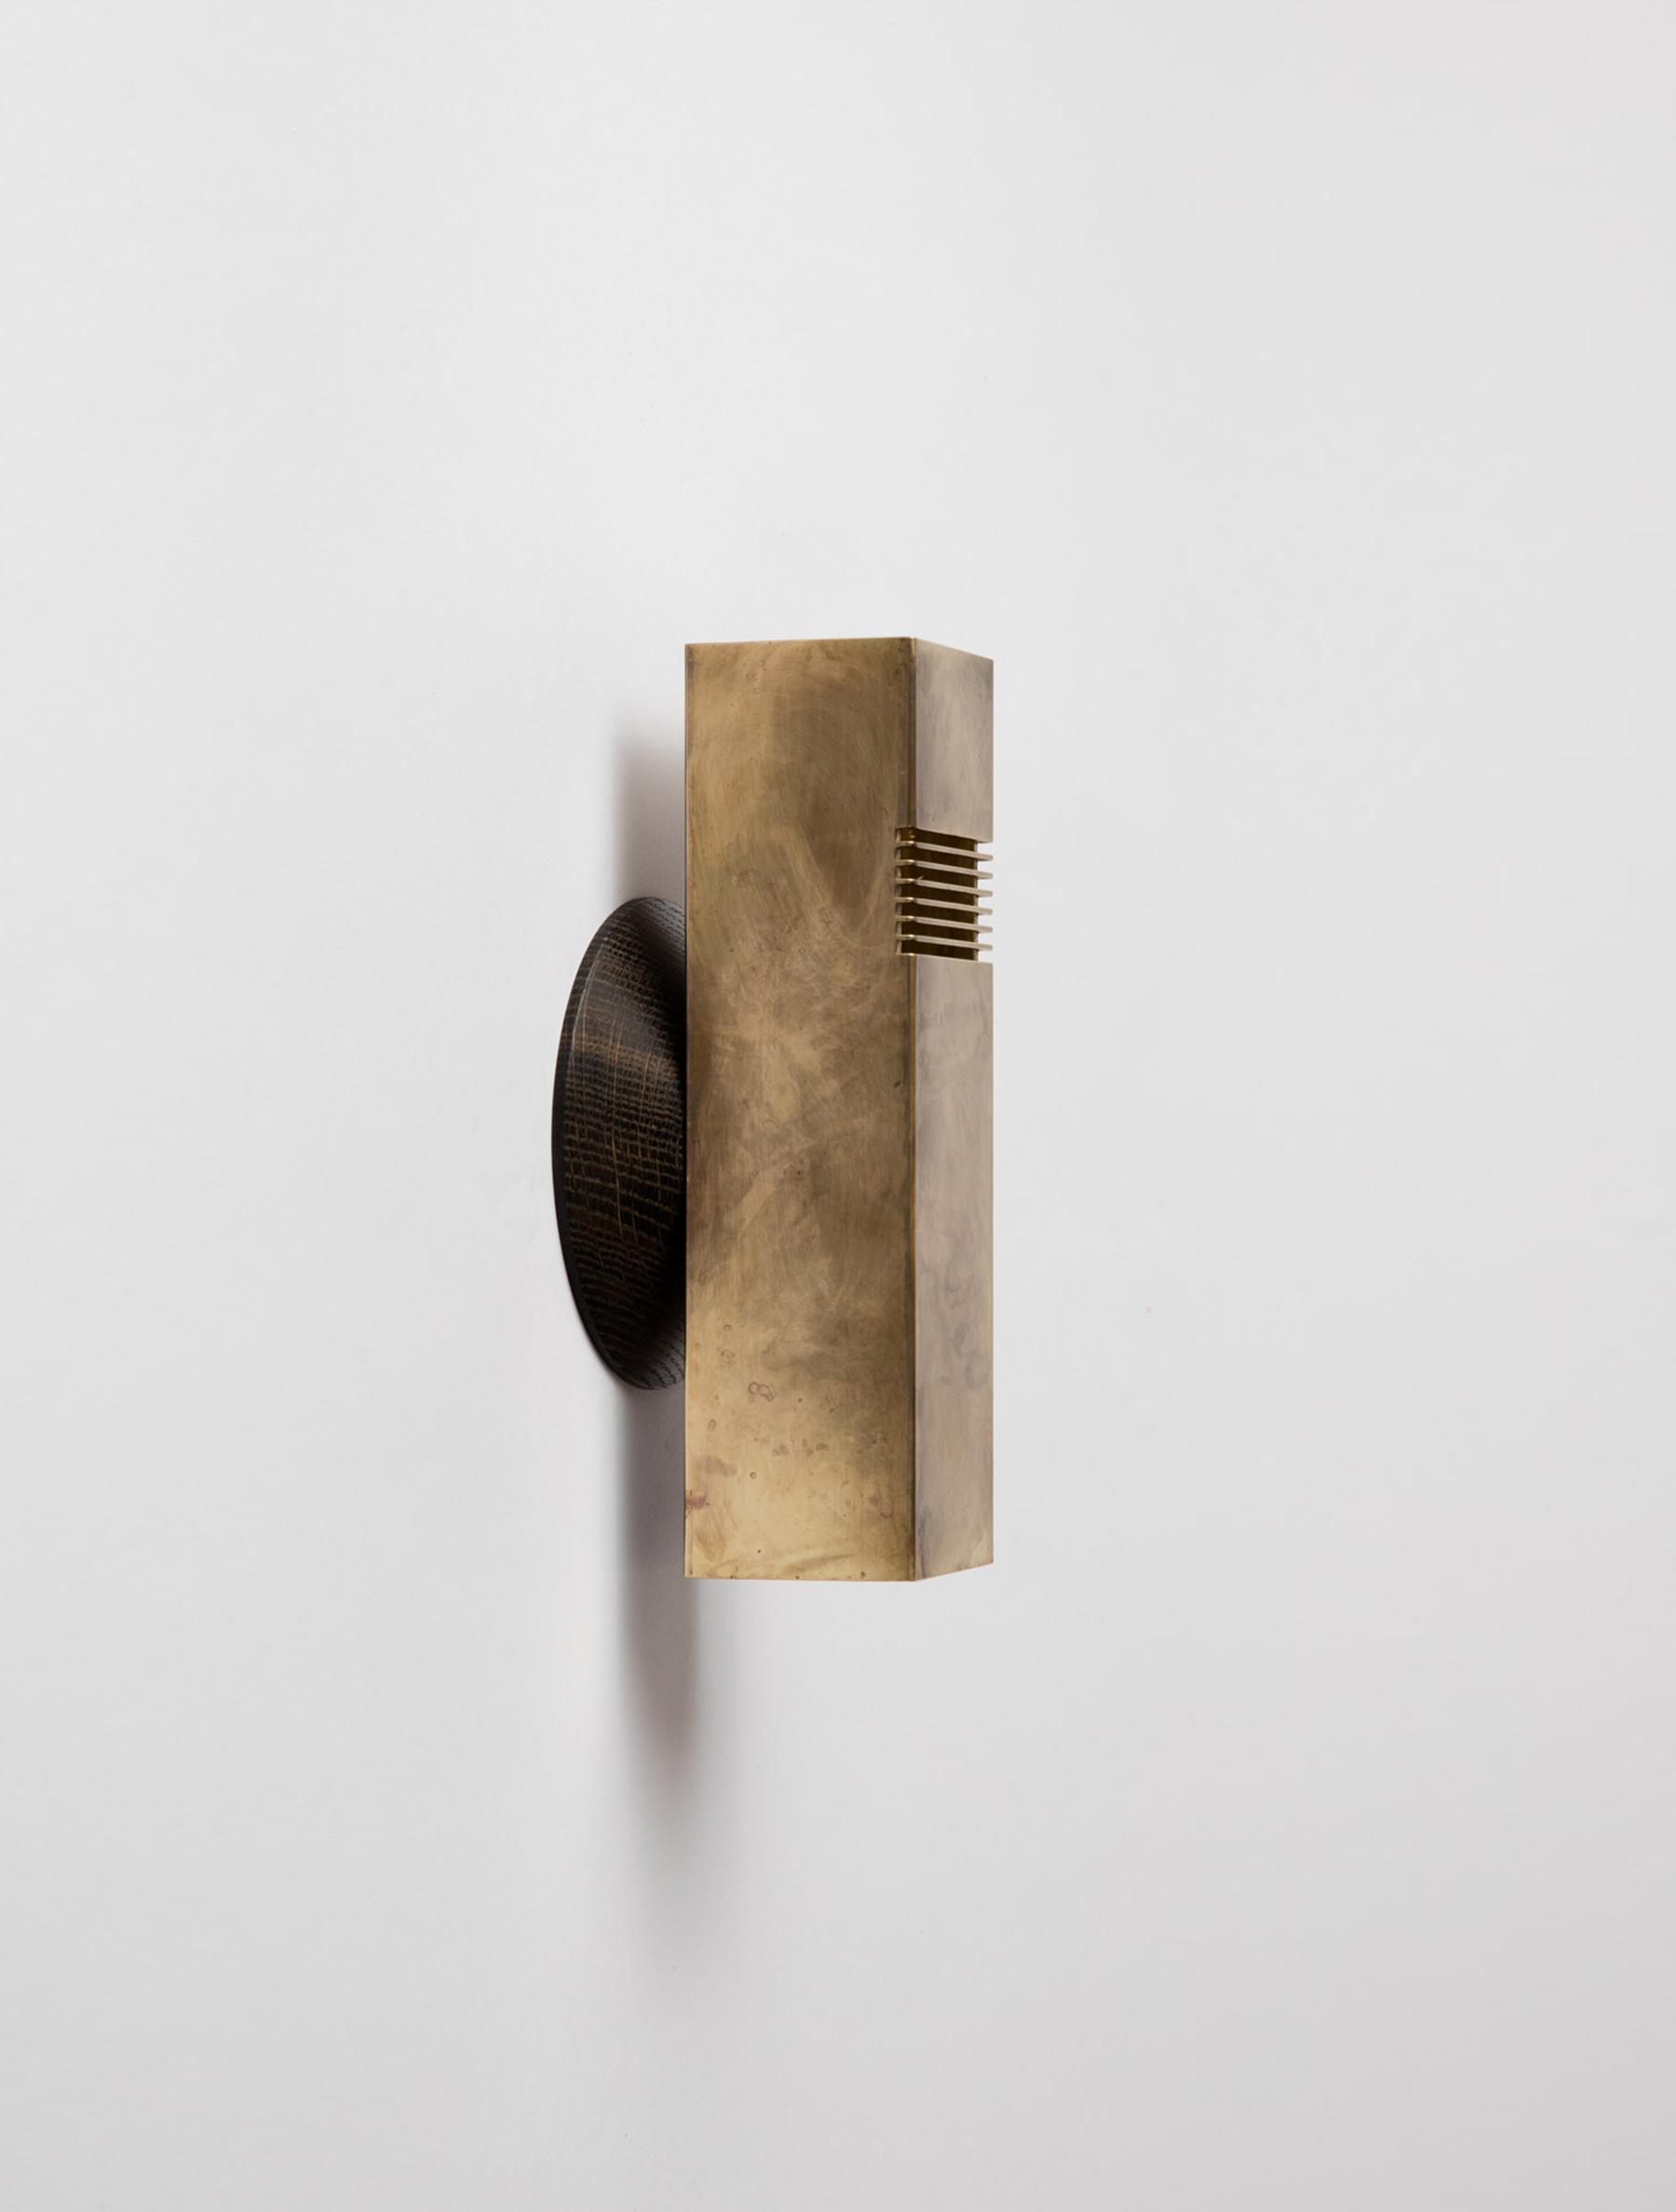 Groove Sconce shown in Raw Brass, Oxidized Oak